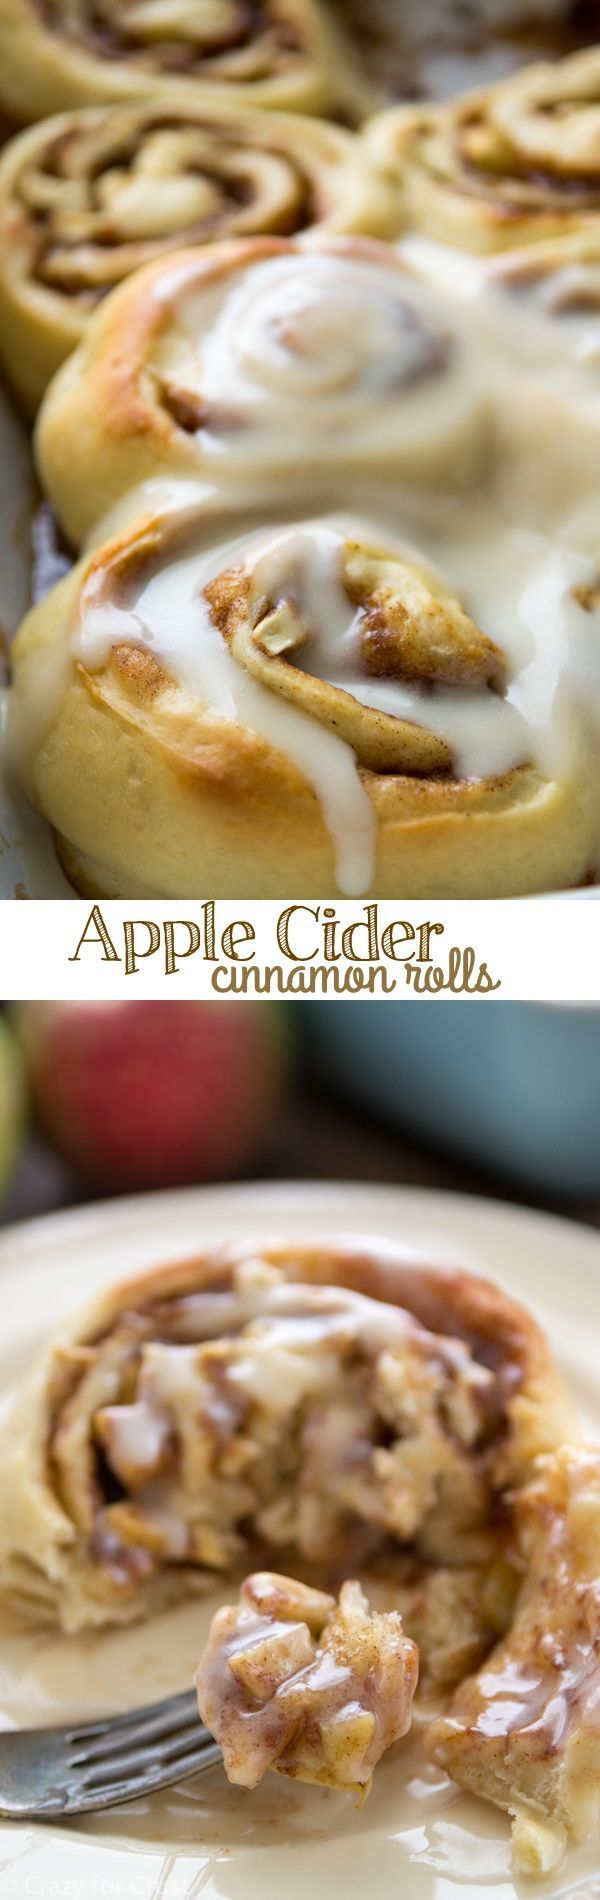 Apple Cider Cinnamon Rolls - apple cider in the dough and the glaze!